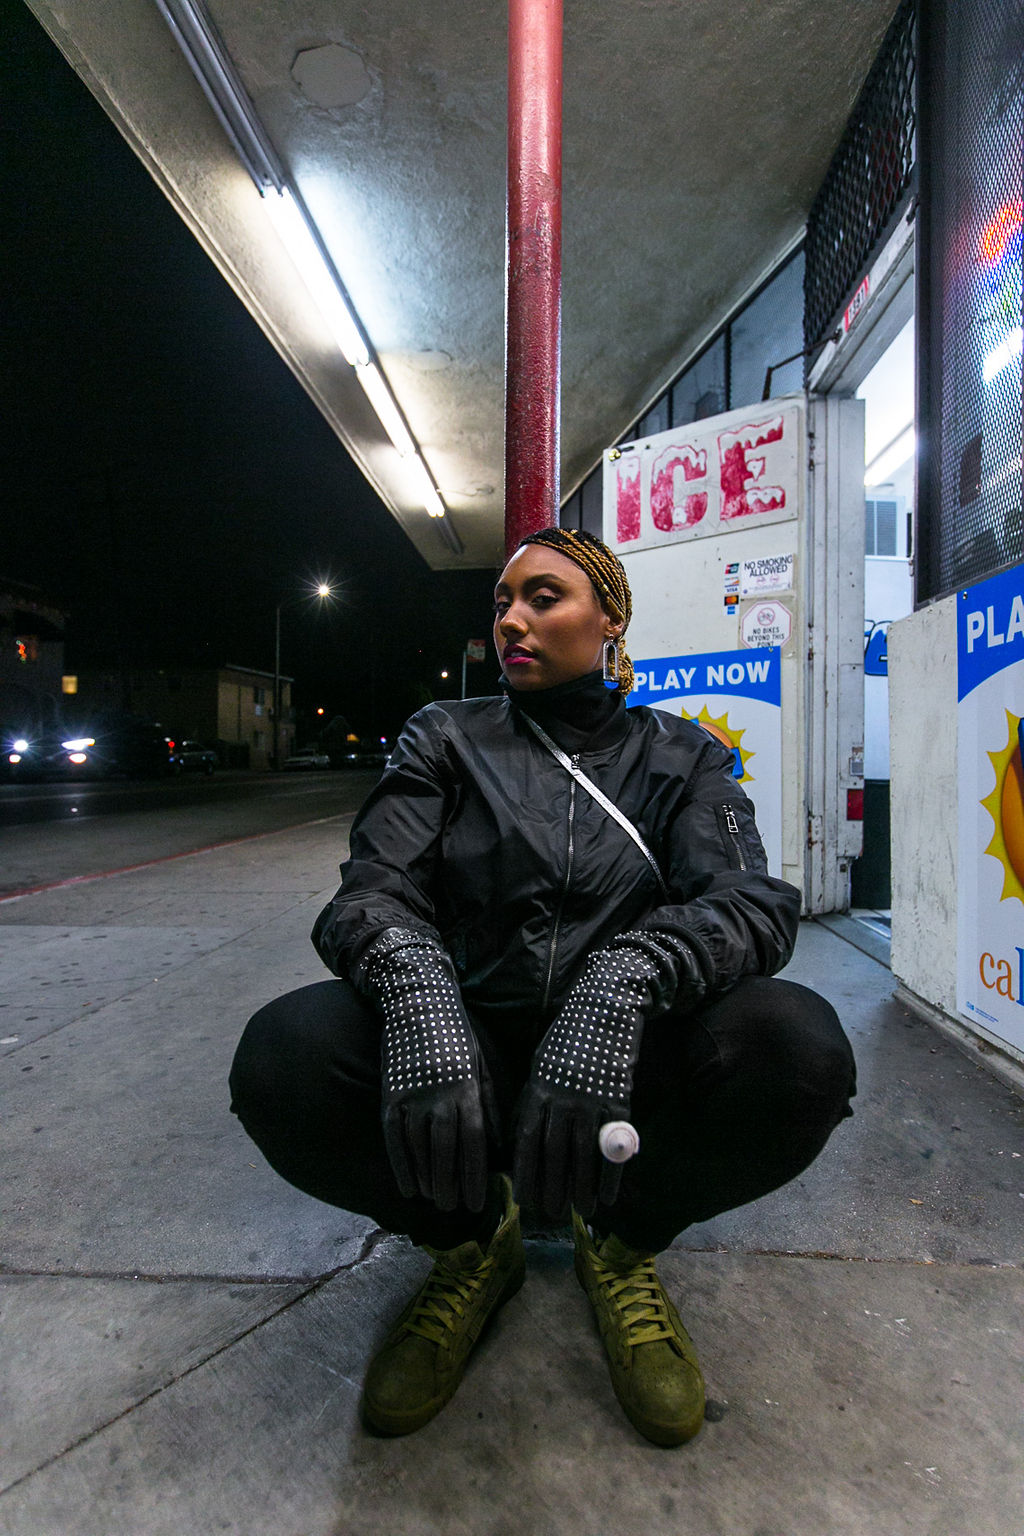 xmmtt-rsee-lcm-wear who you are-liquor store-night photography-asics-fall fashion